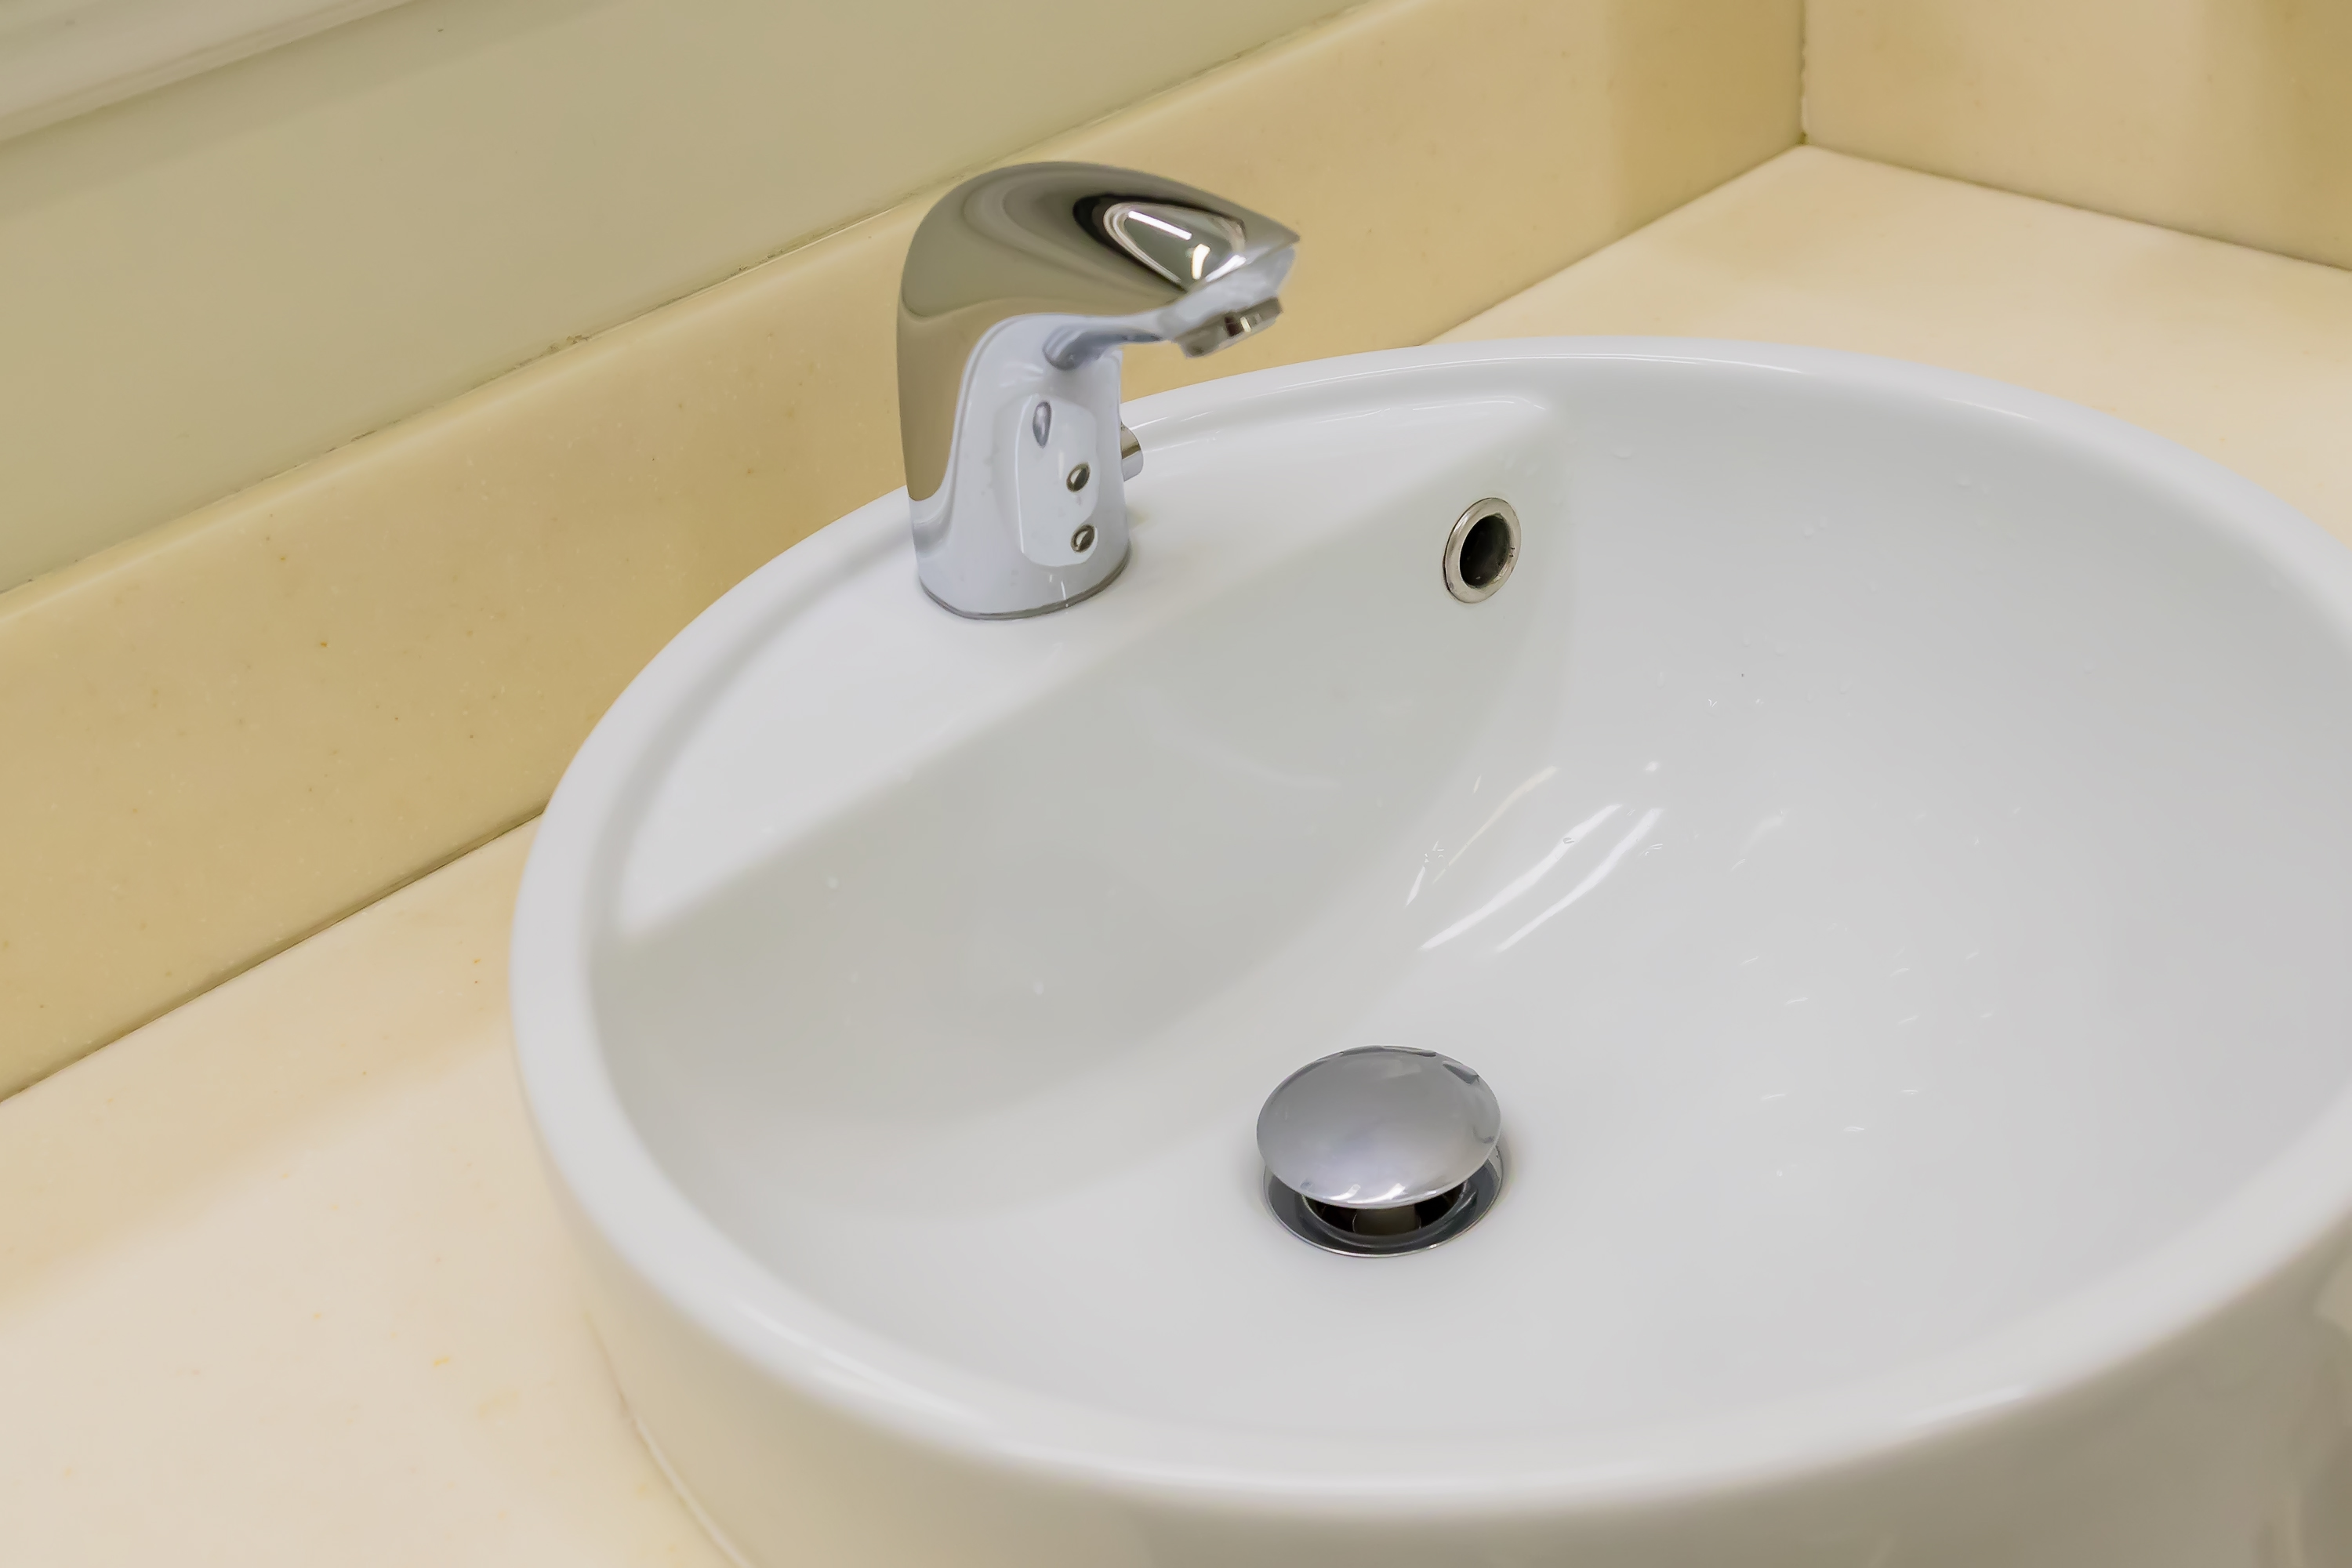 How To Drill Holes In A Porcelain Sink Home Guides Sf Gate